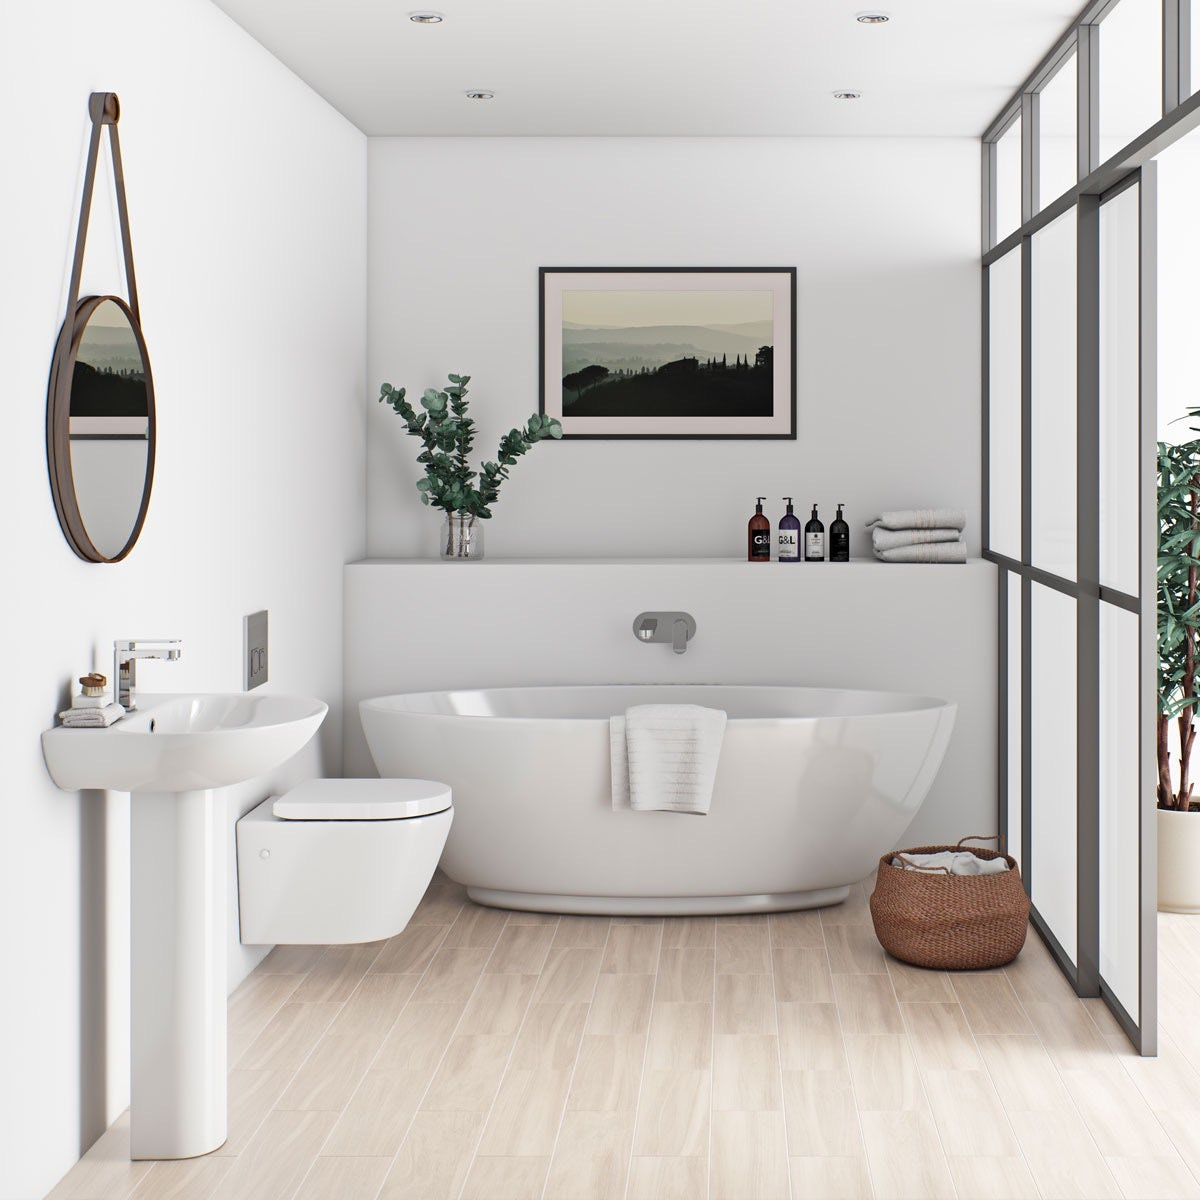 View Our Range Of Complete Bathroom Suites